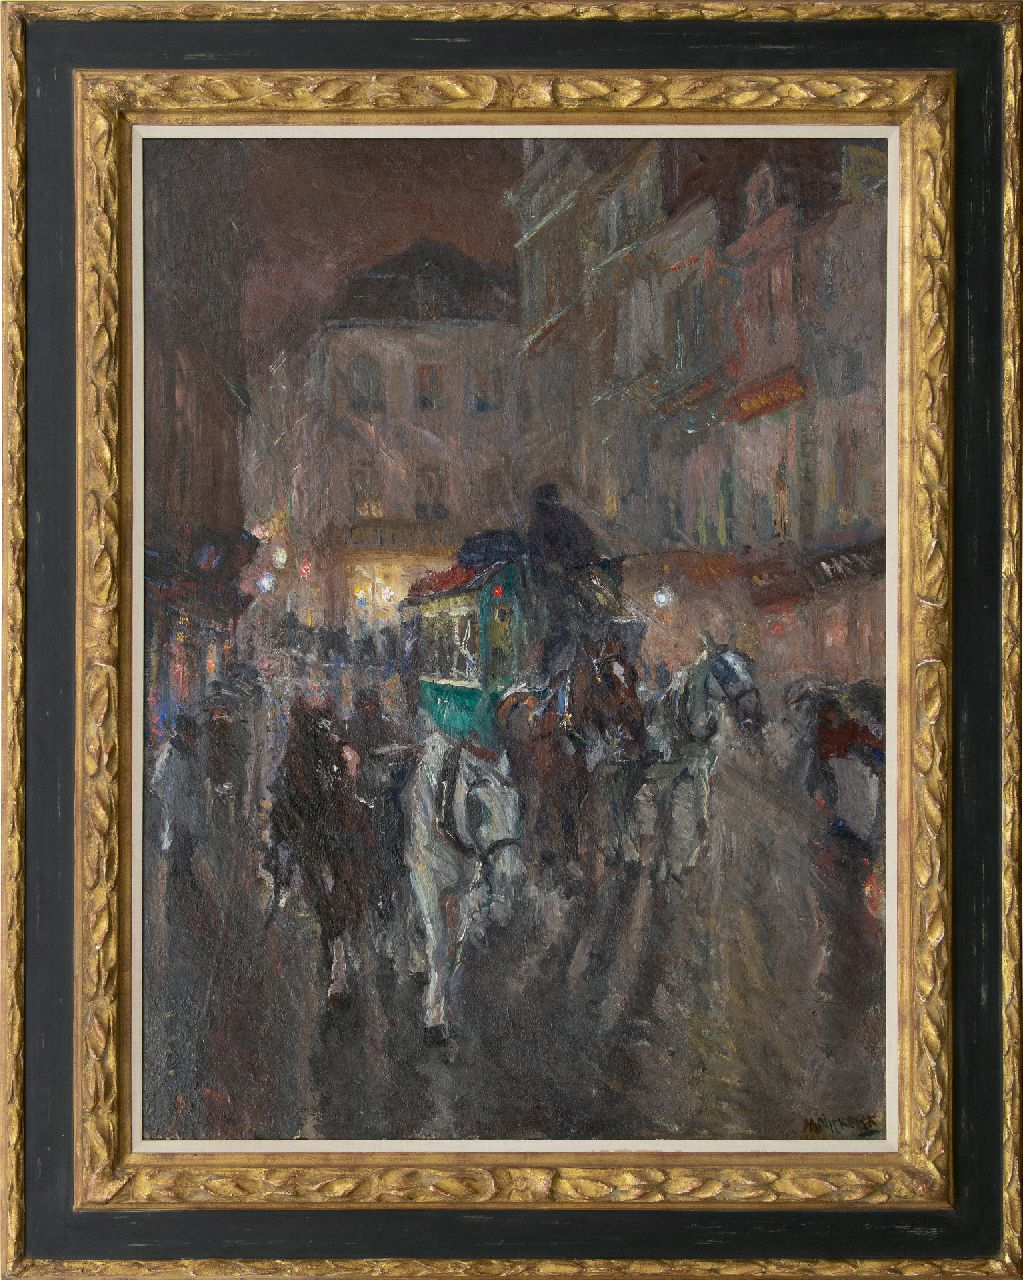 Niekerk M.J.  | 'Maurits' Joseph Niekerk | Paintings offered for sale | An omnibus driving through the city night, oil on canvas 115.5 x 85.3 cm, signed l.r. and dated 1919